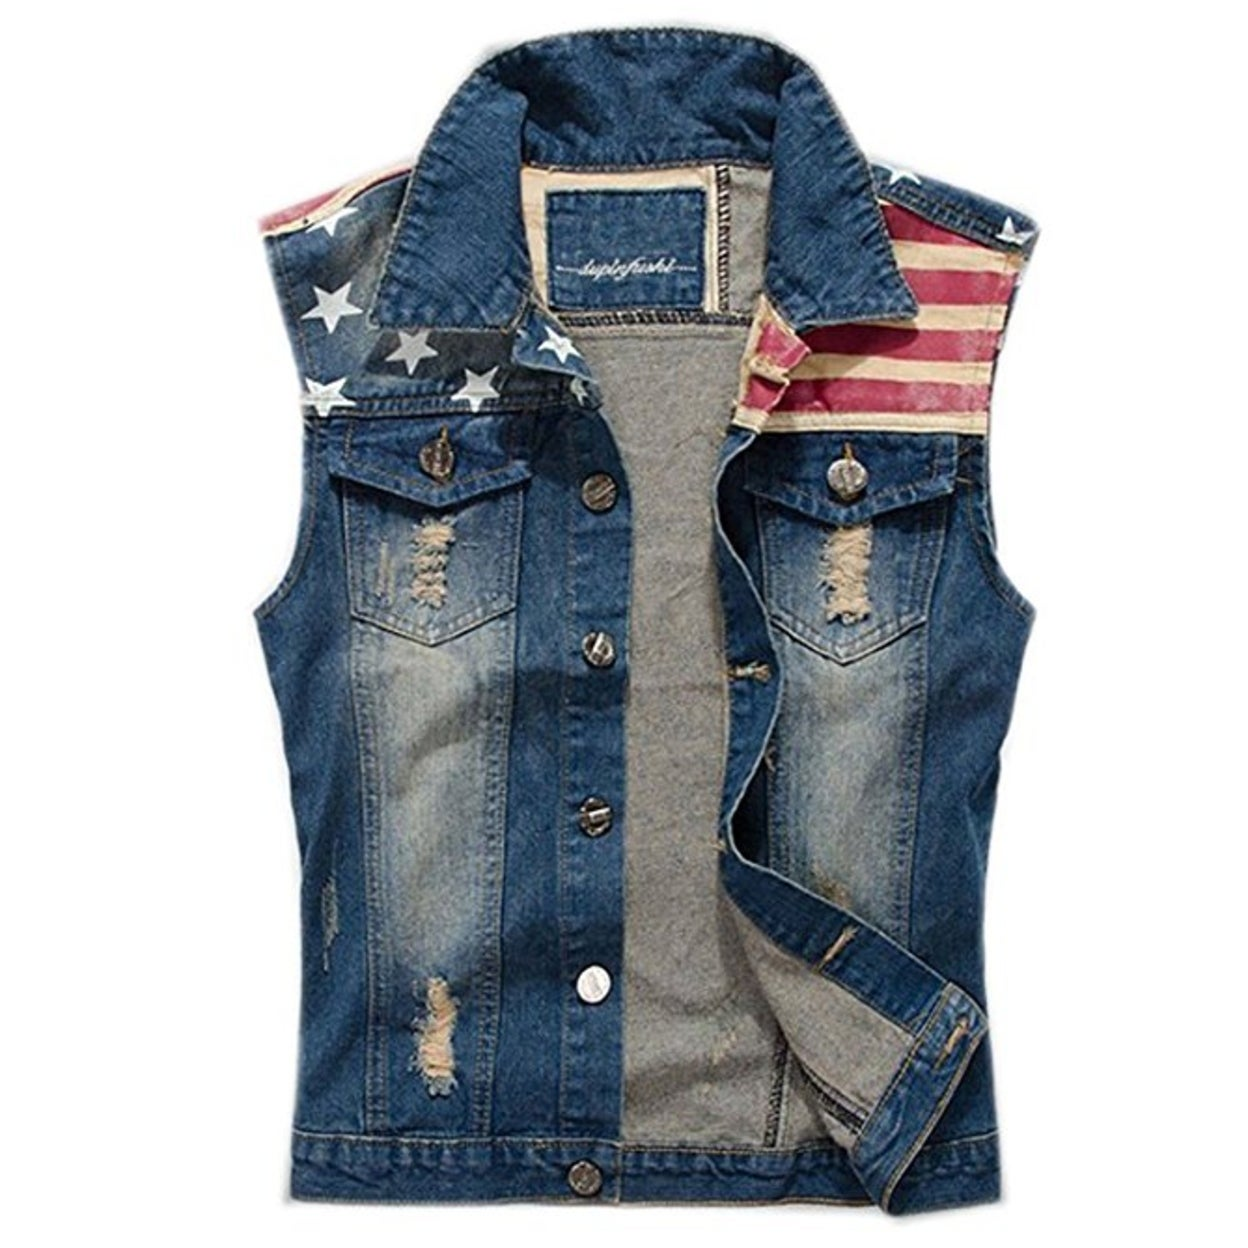 7d34c4adaf Shop Men s Comfortable Slim Fit American Flag Demin Jacket Sleeveless Vest  - Free Shipping On Orders Over  45 - Overstock.com - 23028977